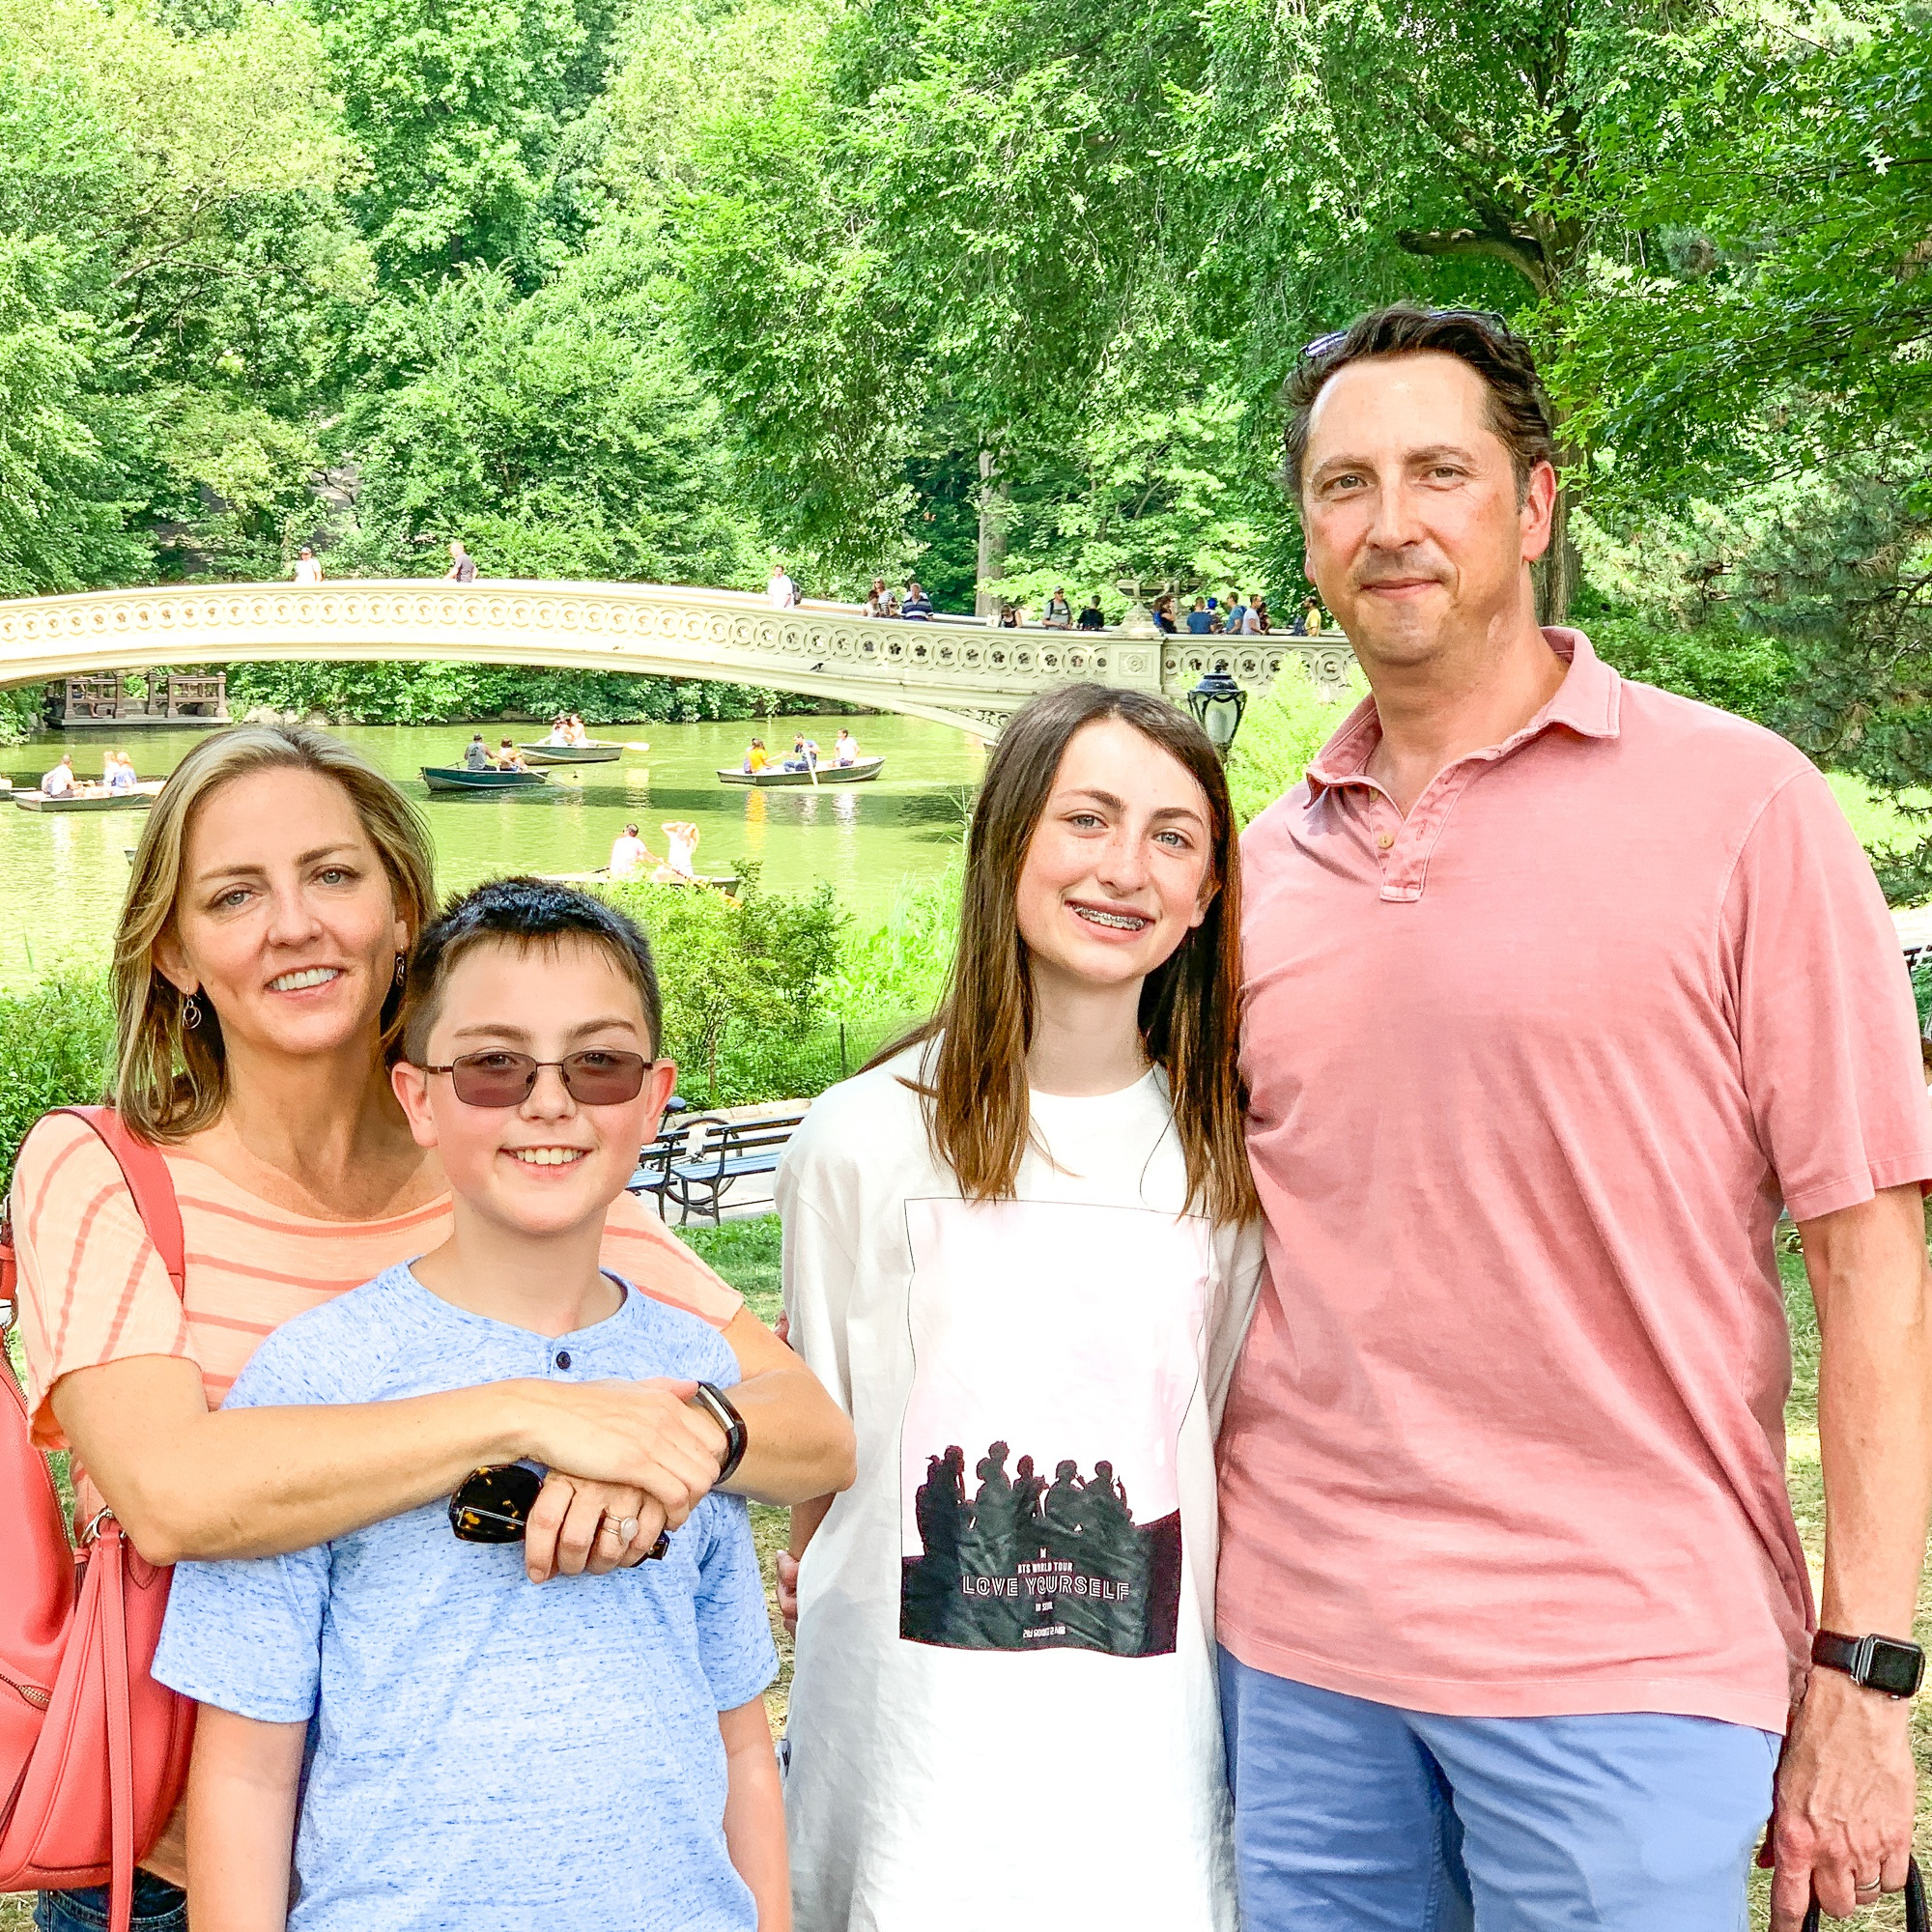 The Travel Mama and family in Central Park, New York City